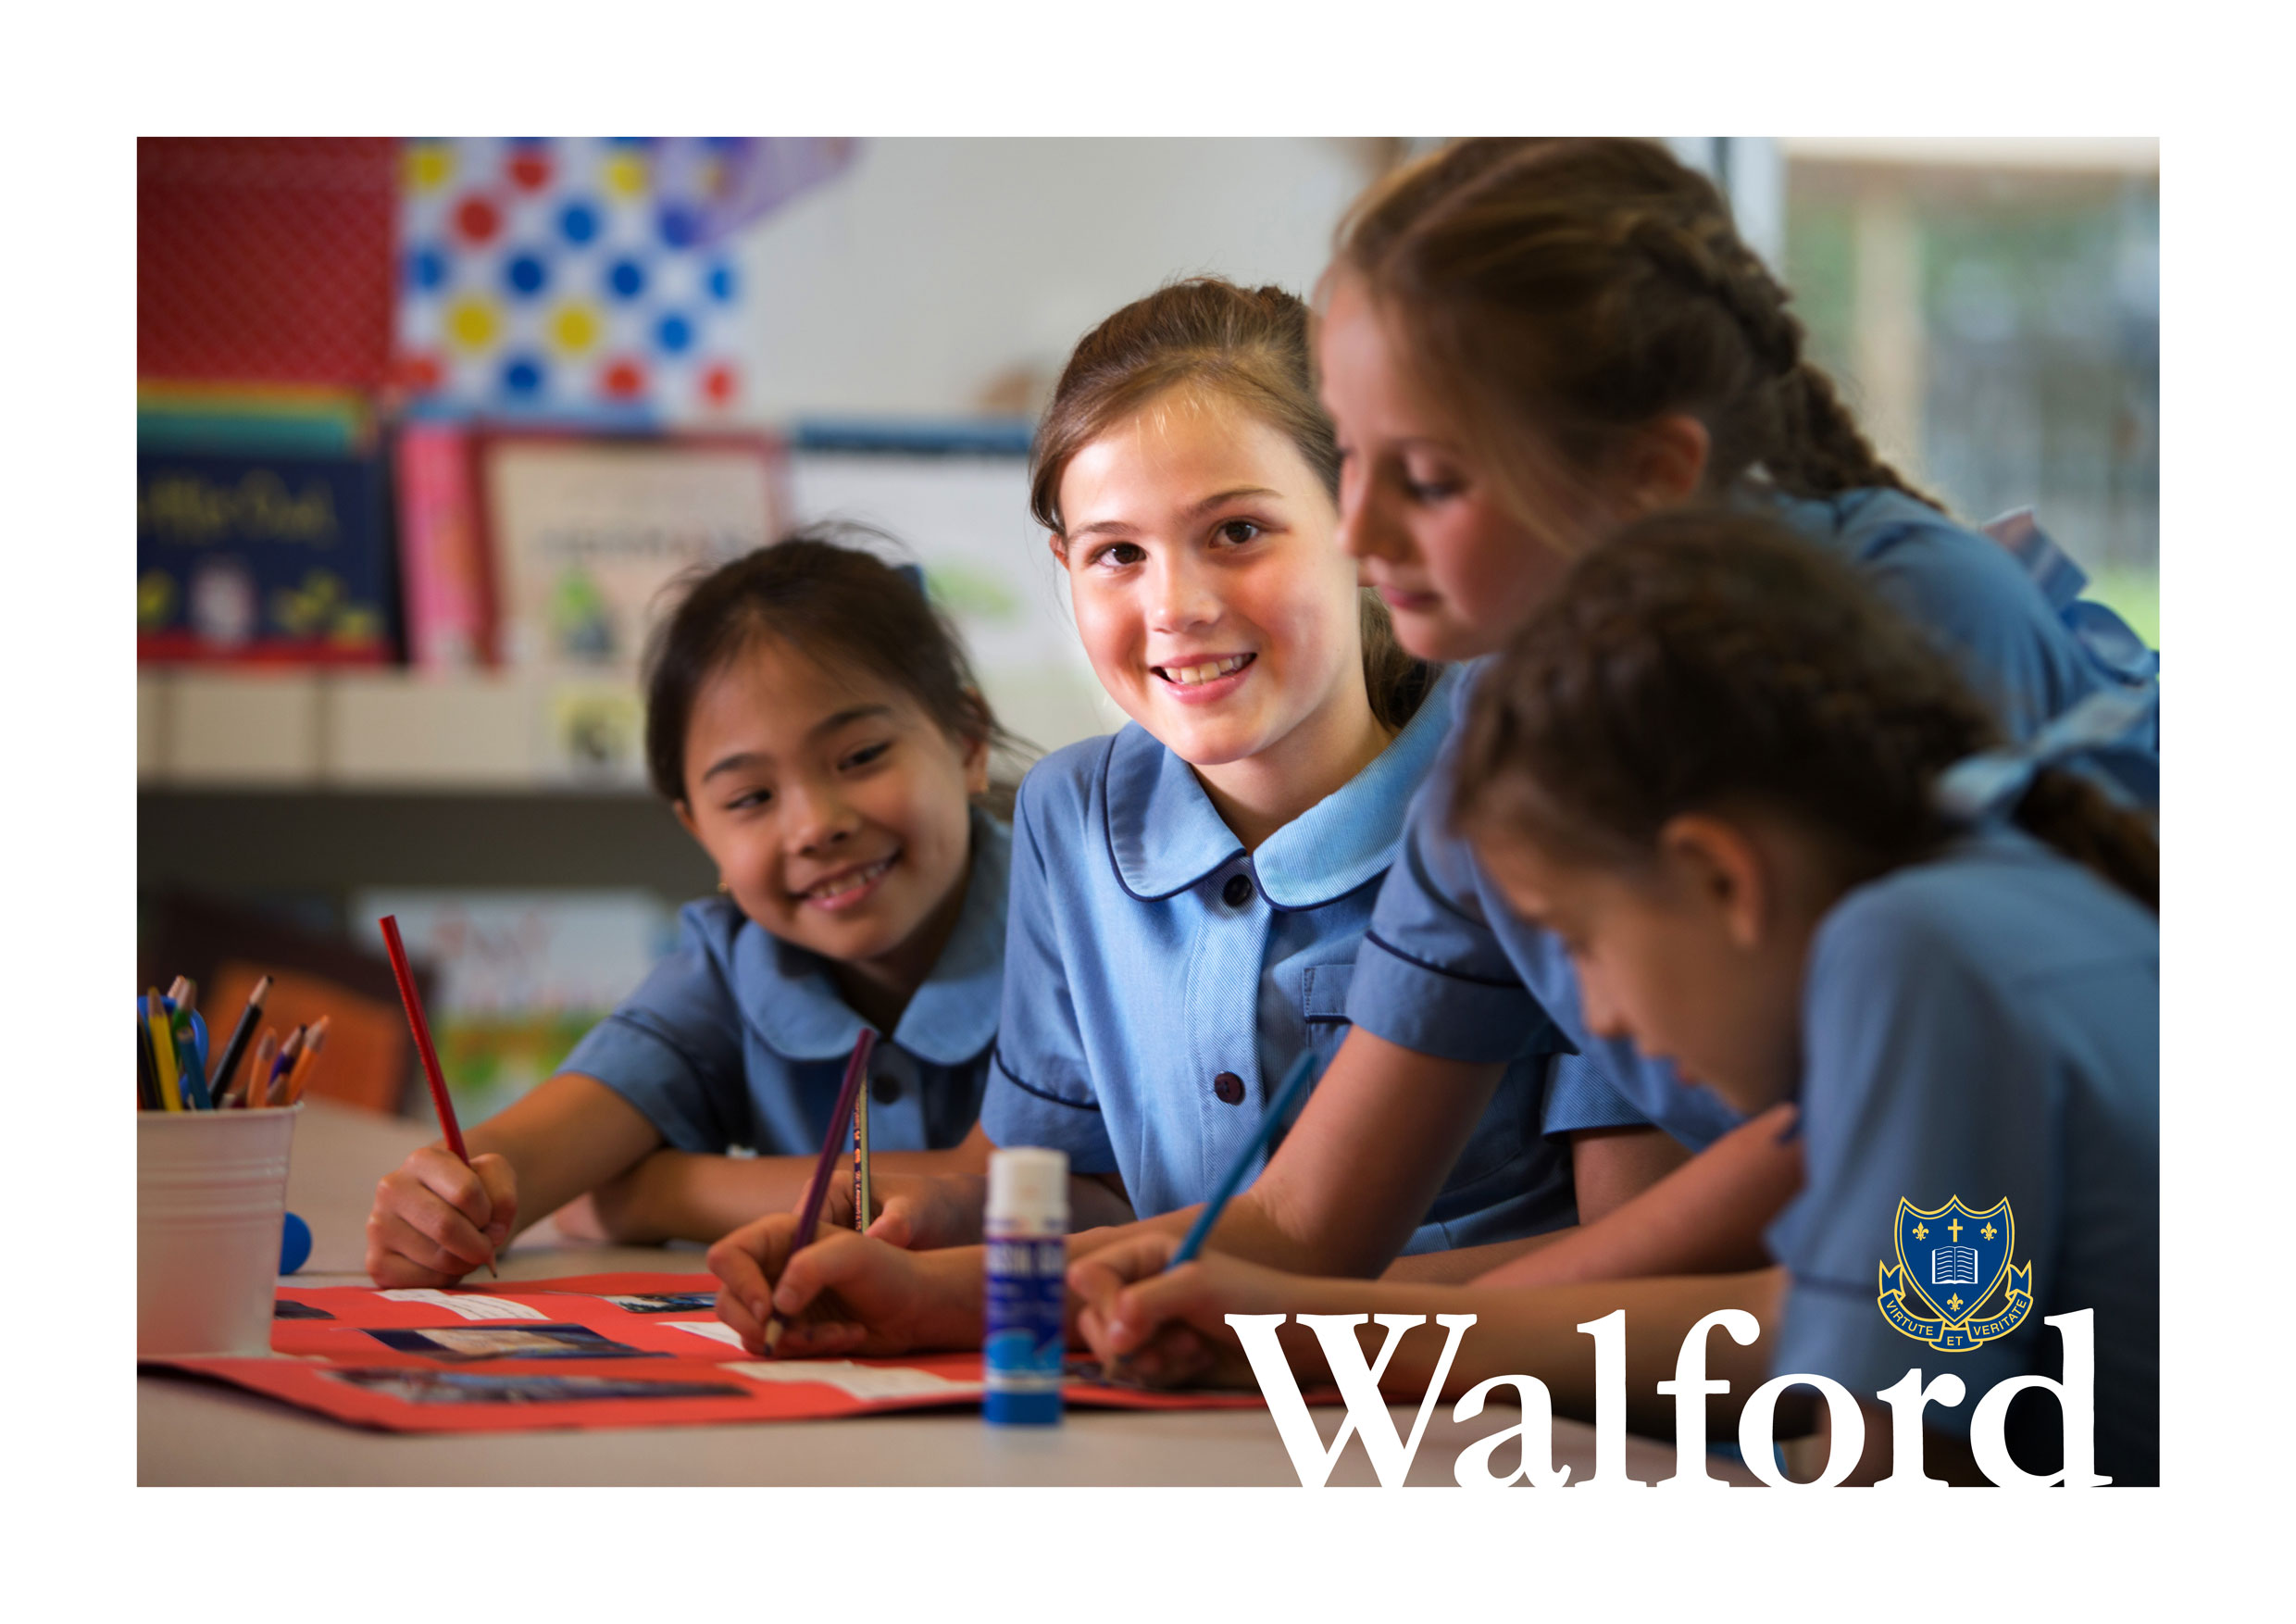 WALFORD-BRANDING-IMAGES_4